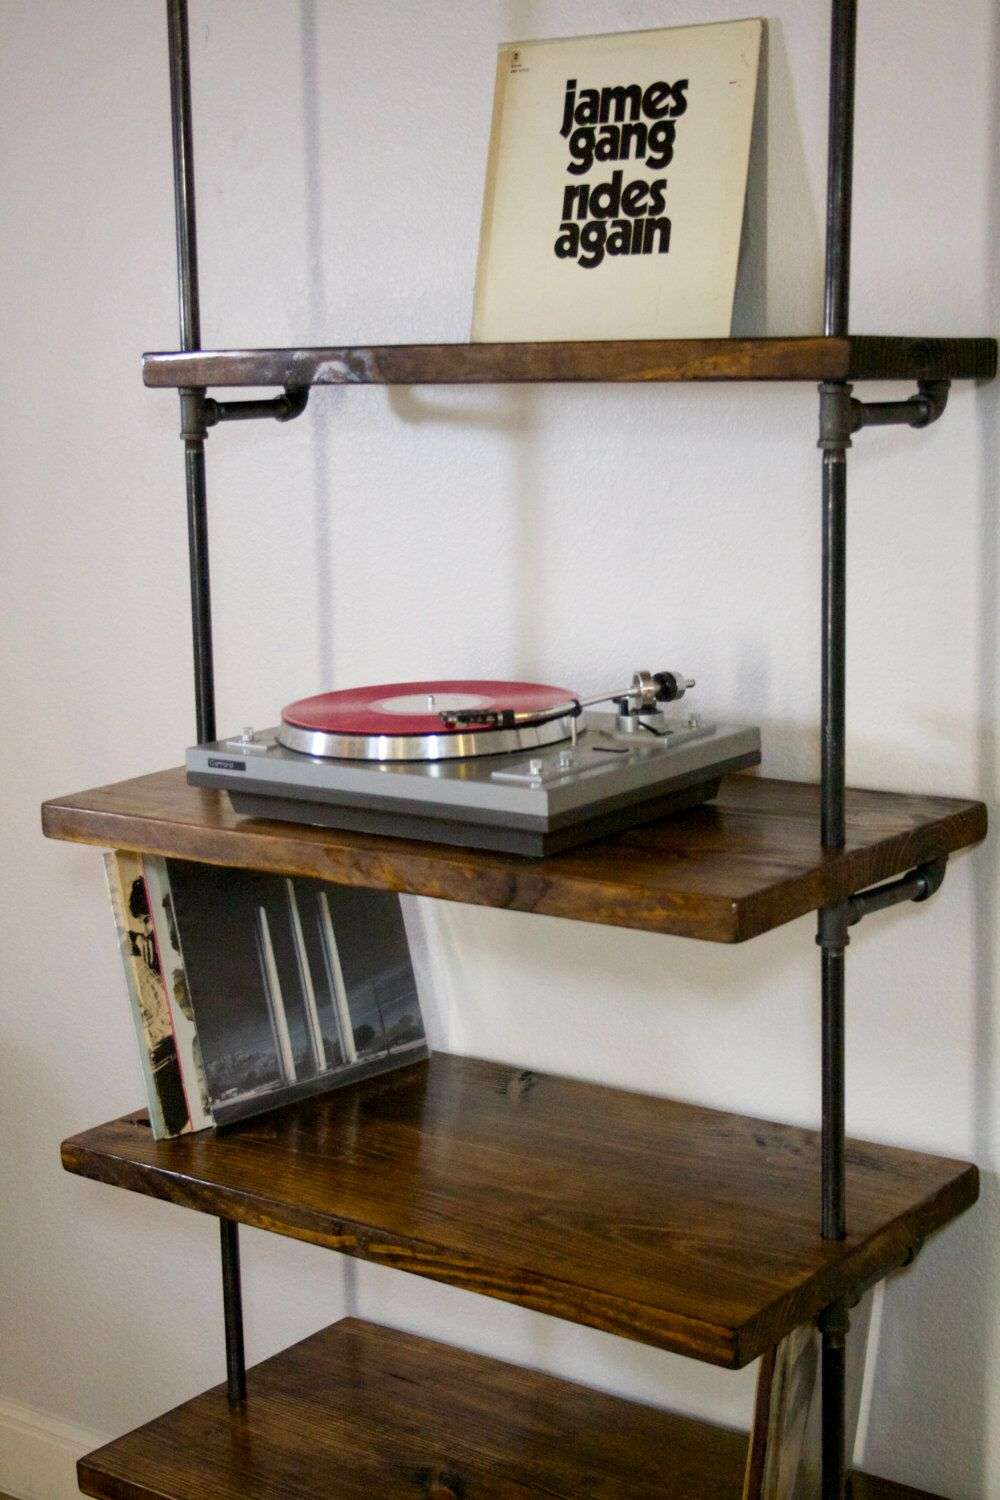 Record Shelving Unit Bookcase Modern Turntable Storage Shelf Furniture